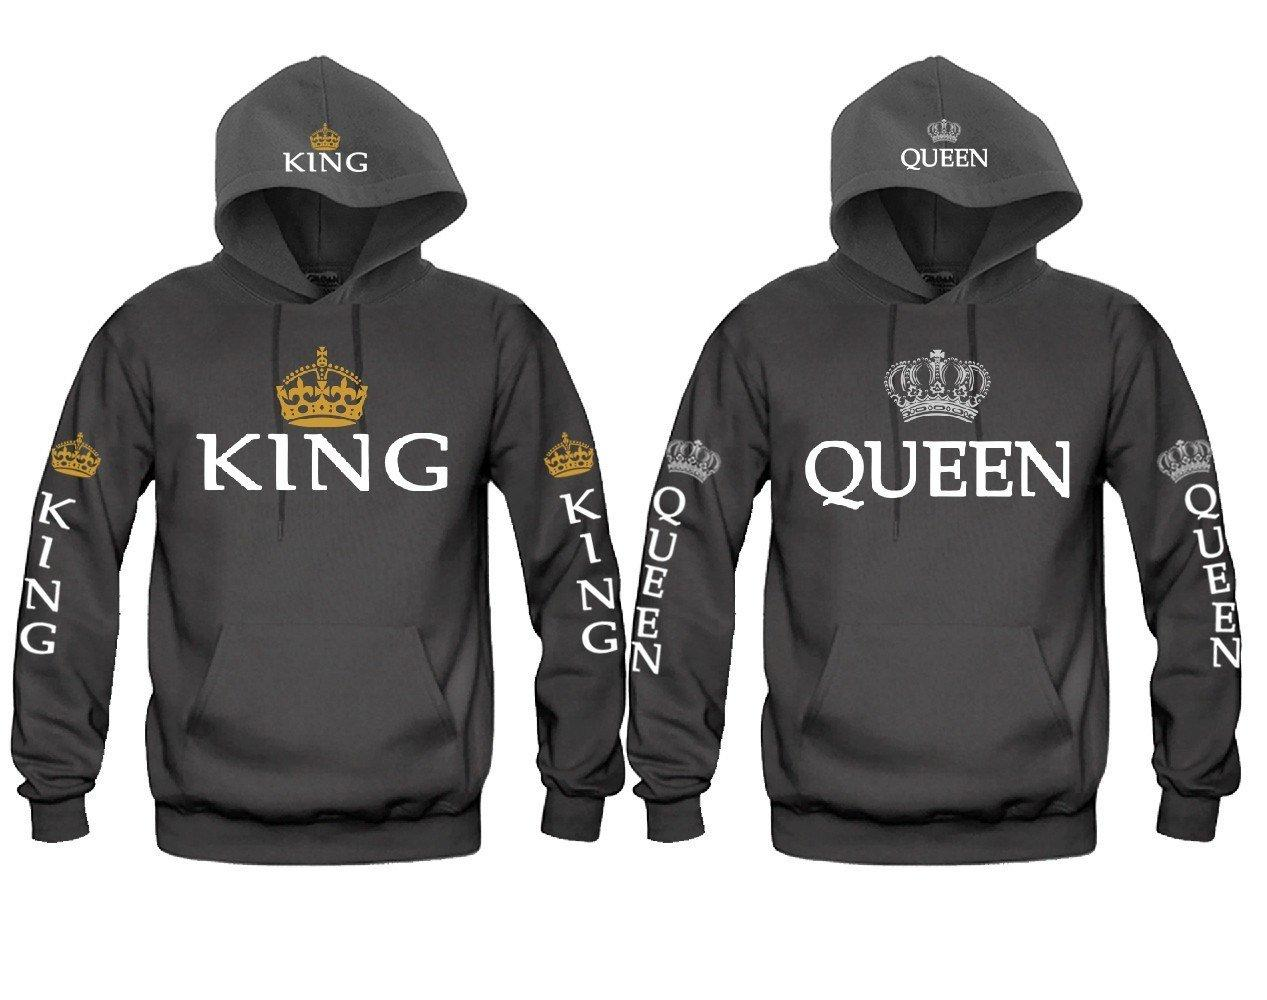 71e731328f King and Queen FULLY LOADED Awesome Gift Unisex Couple Matching Hoodies